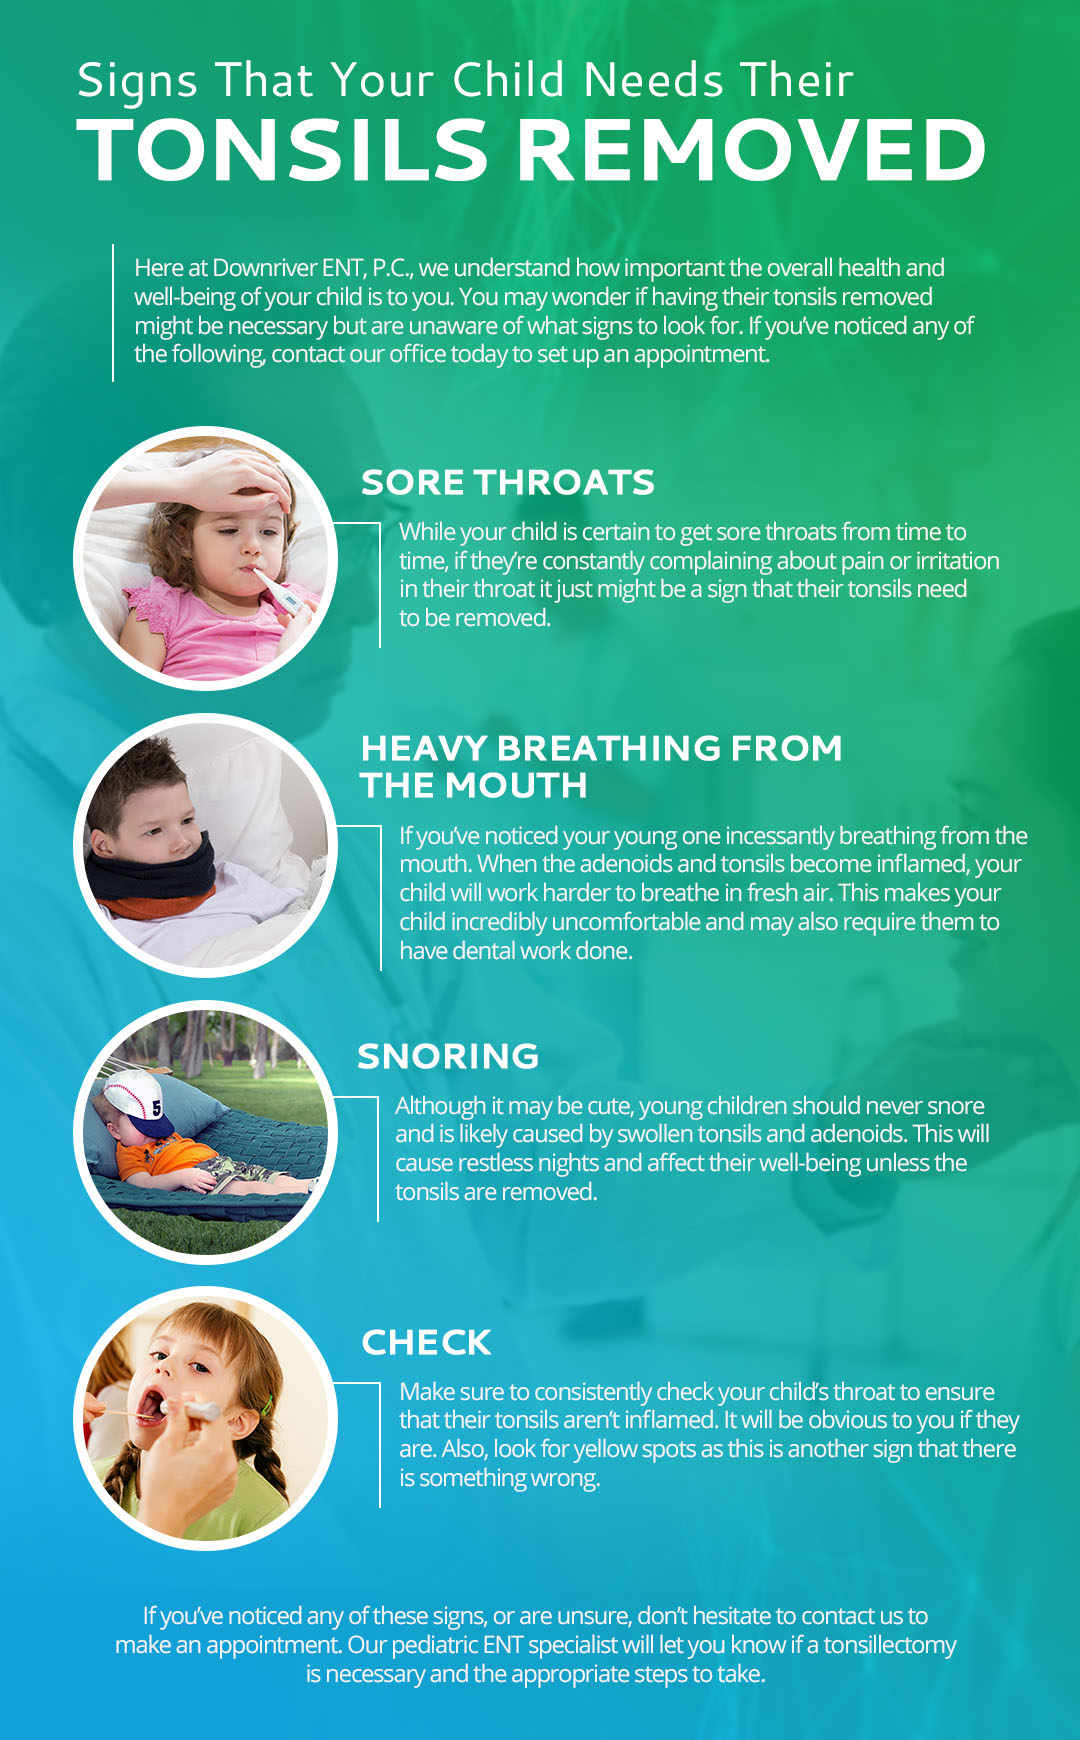 ENT Specialist in Southfield: Signs That Your Child Needs Their